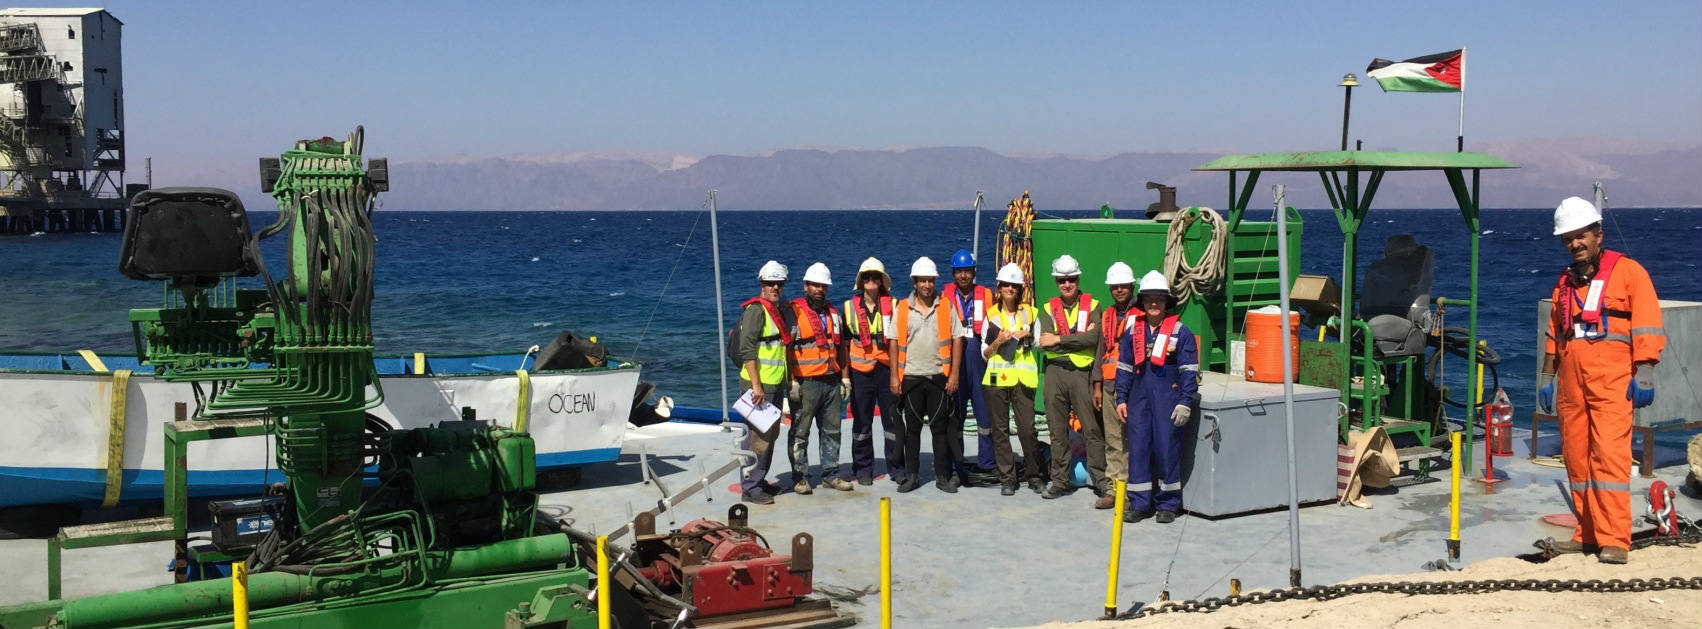 Barracuda Team at the Industrial Terminal, Jordan